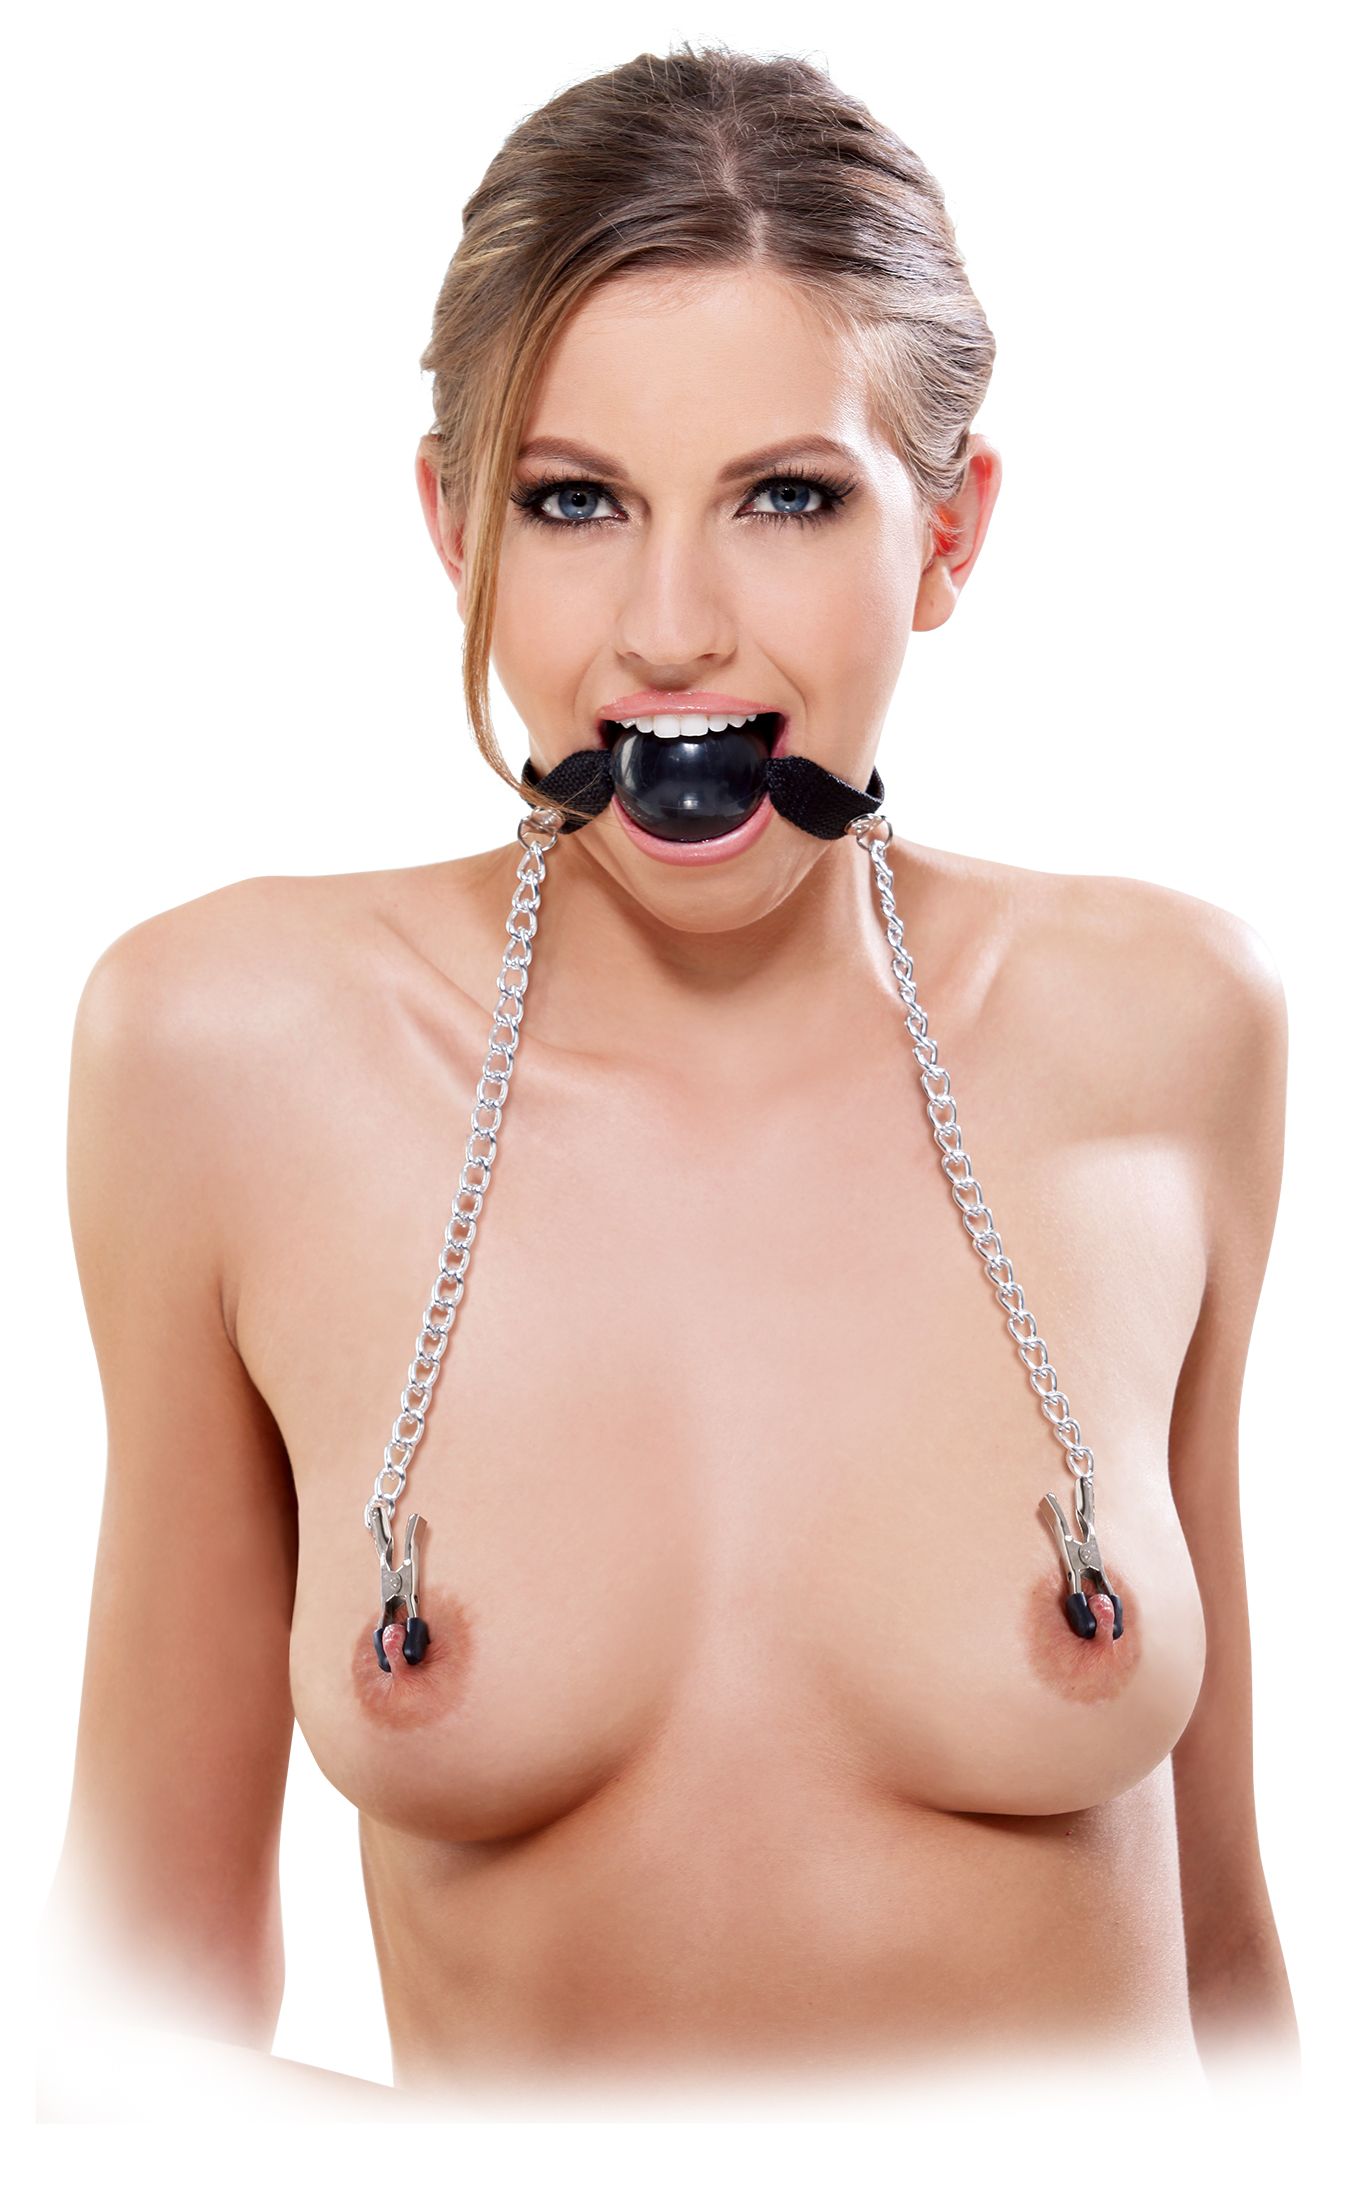 FETISH FANTASY BALL GAG & NIPPLE CLAMPS